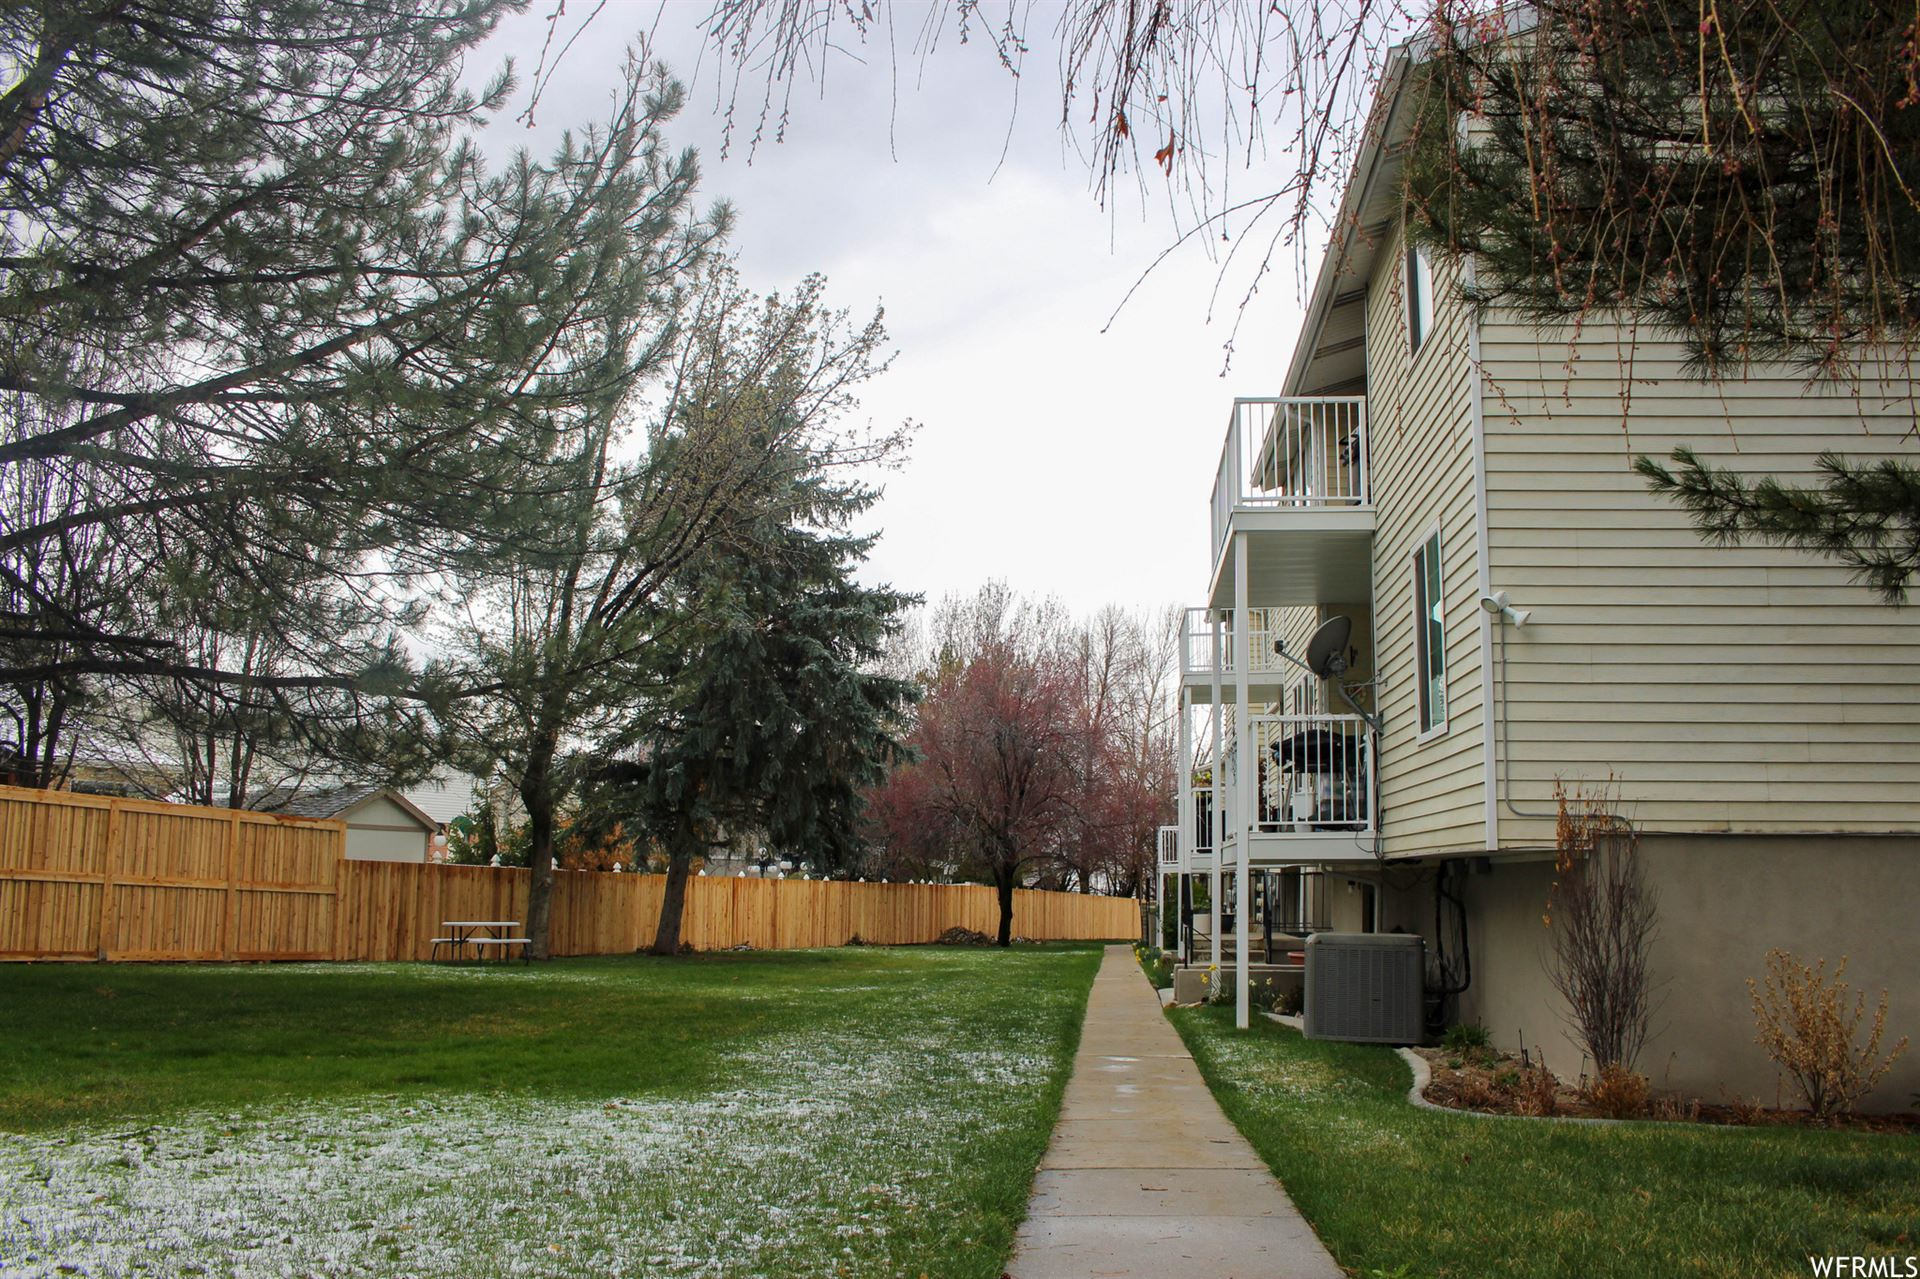 Photo of 4822 S HOLLADAY BLVD E #240, Salt Lake City, UT 84117 (MLS # 1734111)